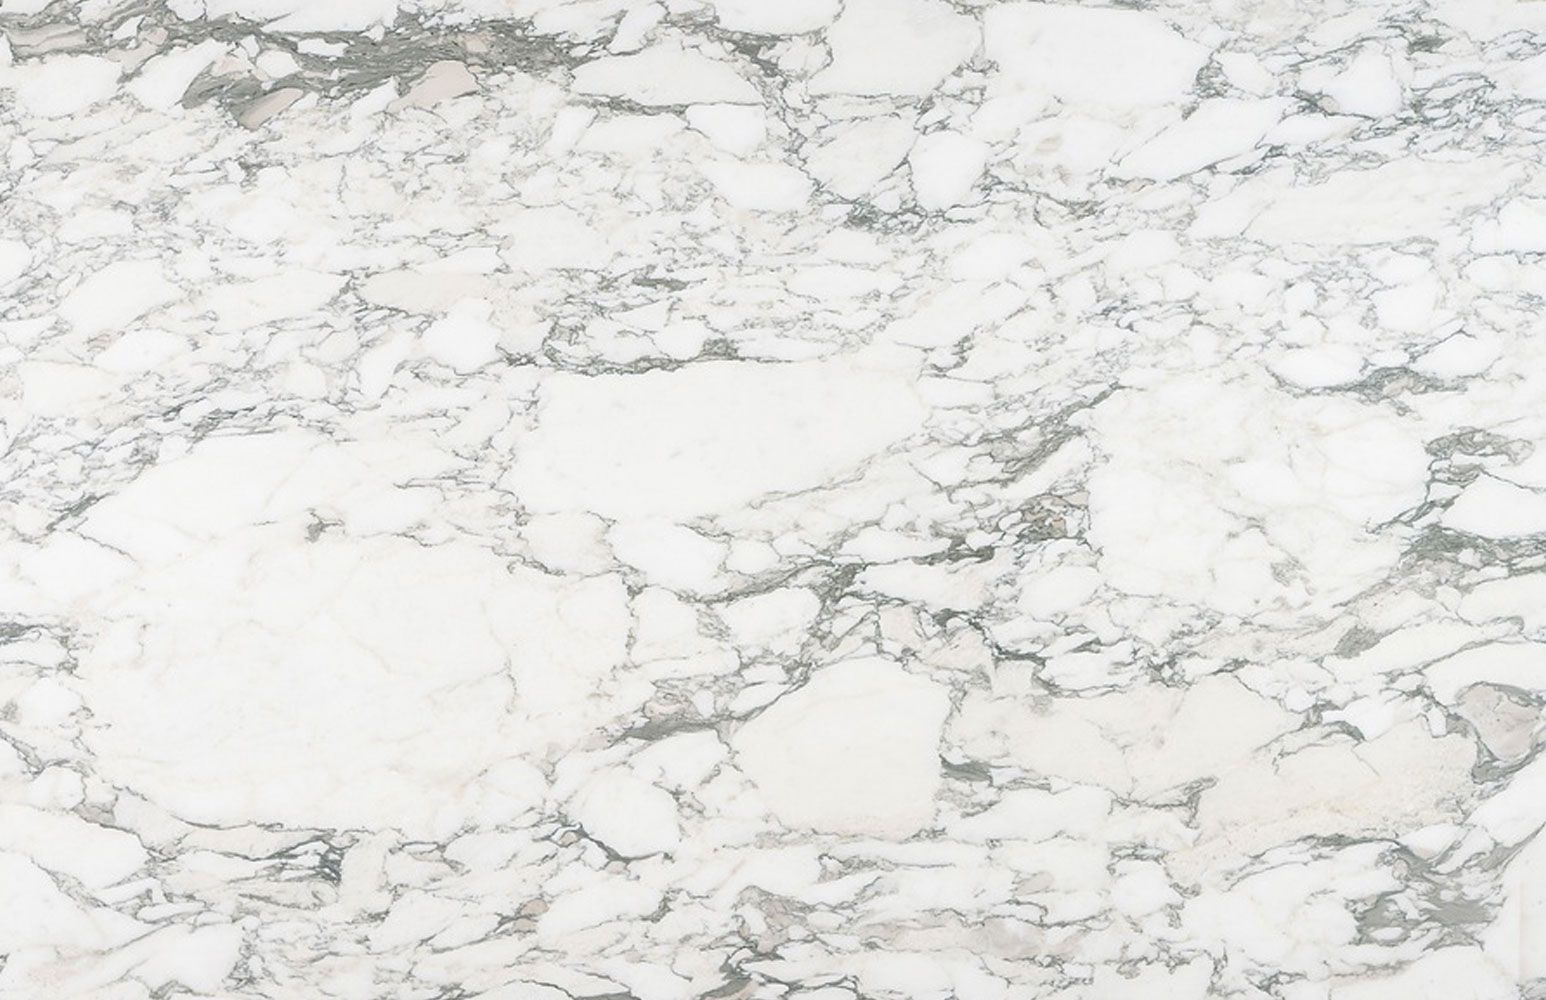 Pin By Ty G On Texture Arabescato Marble White Marble